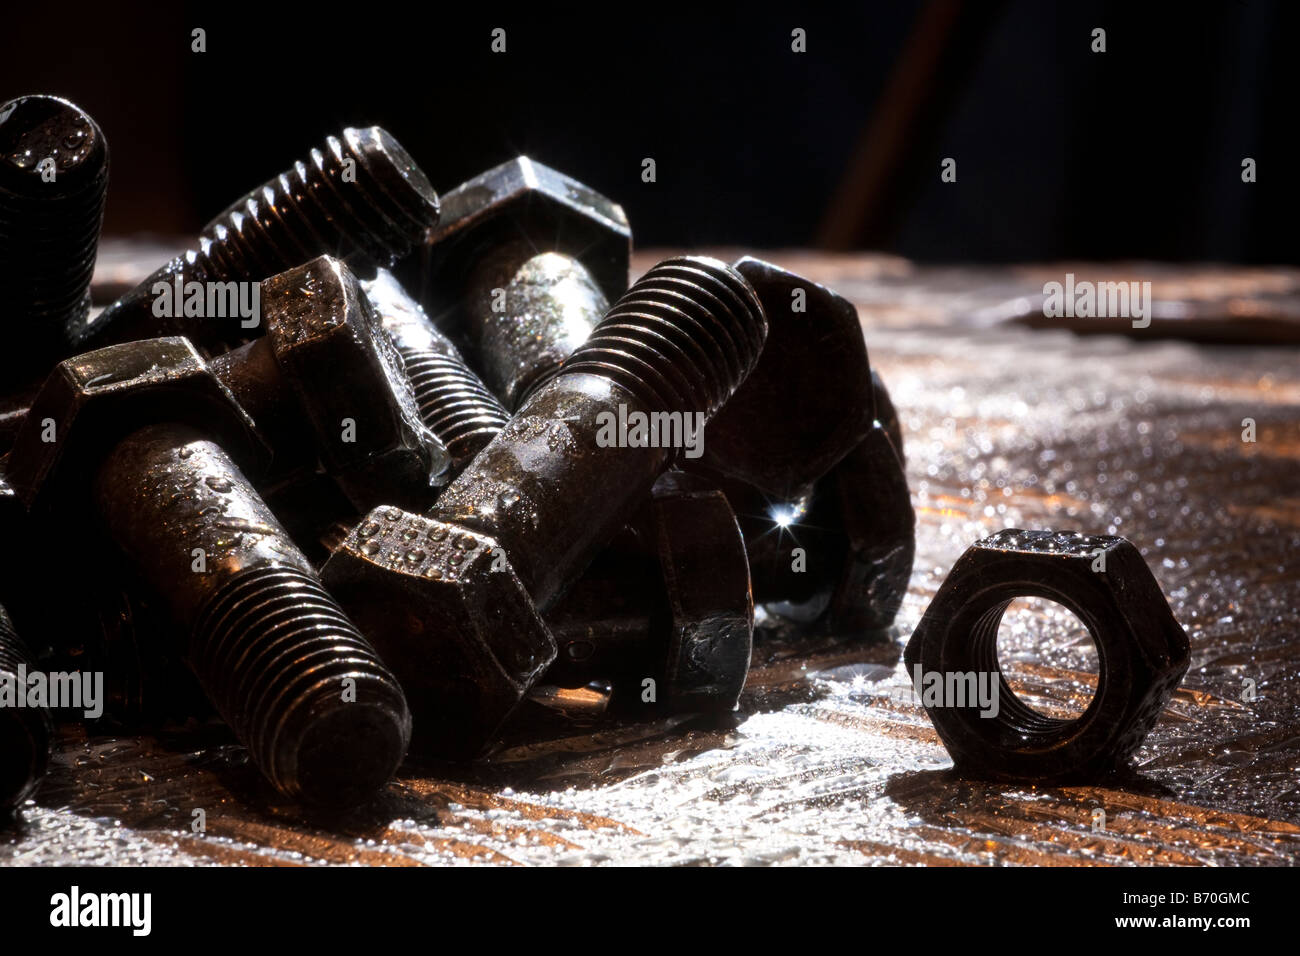 Random artistic pile of threaded bolts and a  hexagonal nut on a sheet steel, backlit, Nut, bolt, steel, sheet, - Stock Image